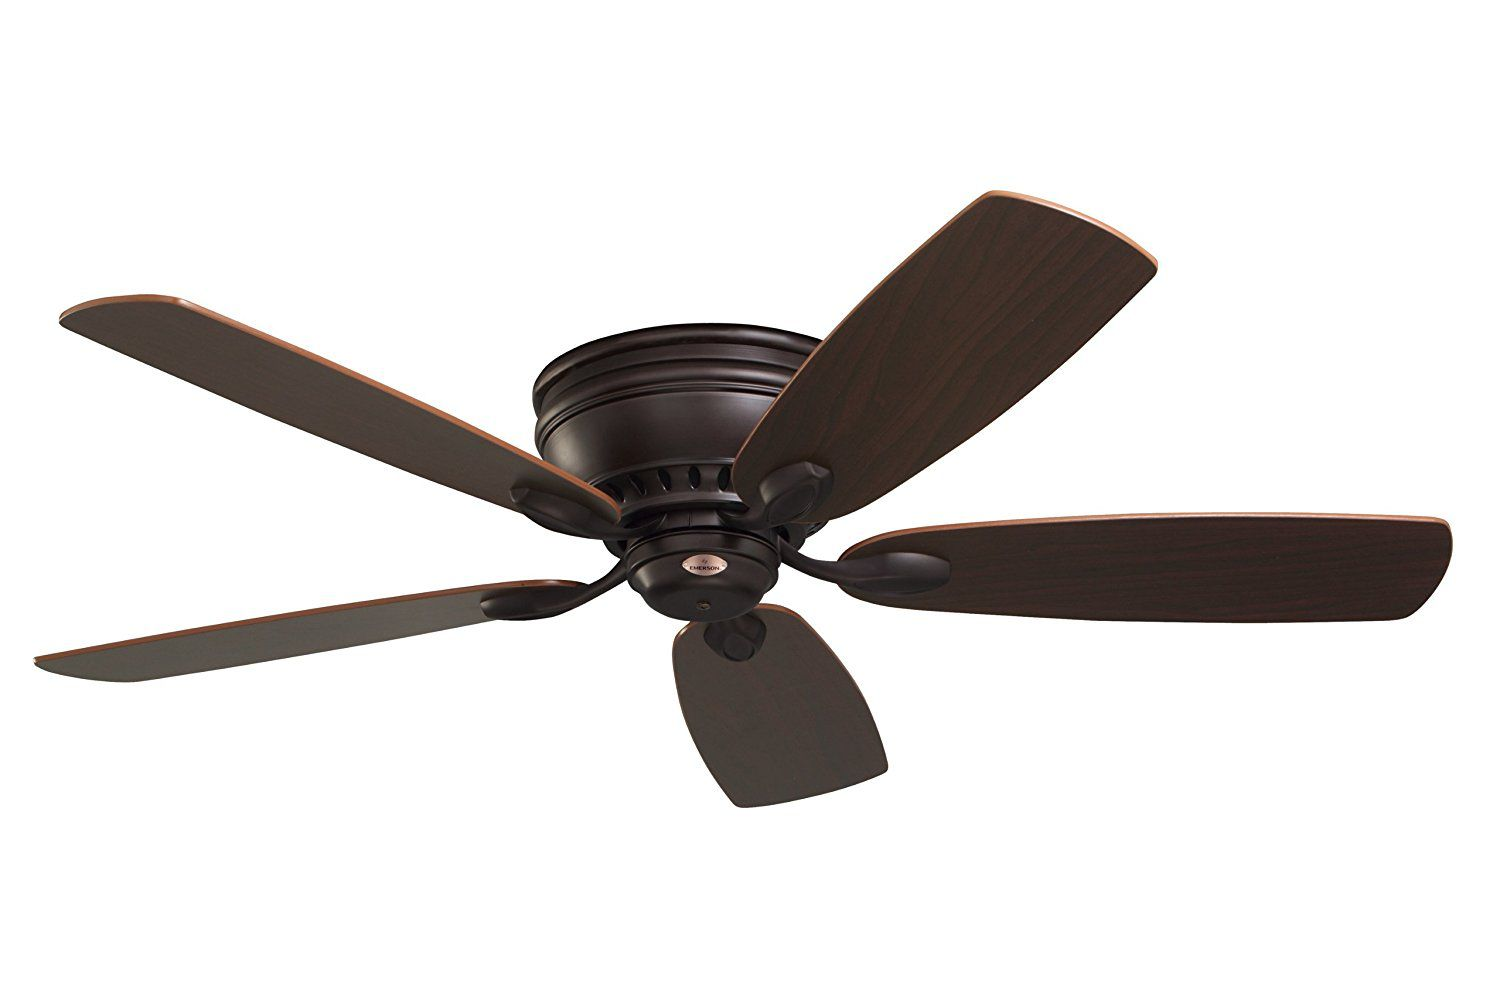 Emerson Ceiling Fans CF905ORB Prima Snugger 52-Inch Low Profile Ceiling Fan With Wall Control, Light Kit Adaptable, Oil Rubbed Bronze Finish